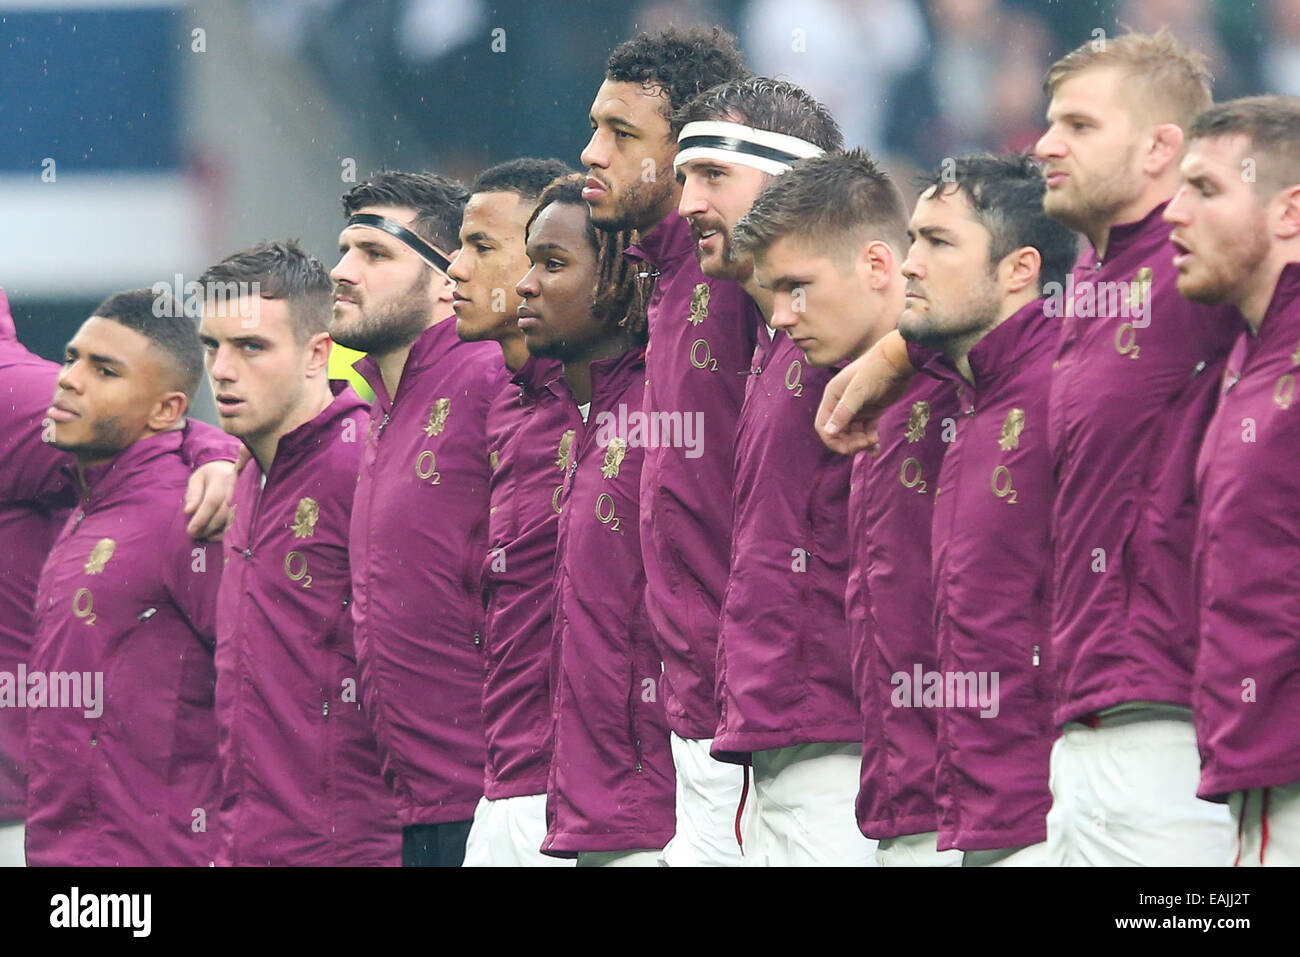 London, UK. 15th Nov, 2014. England's Anthony Watson, who is starting his first match, and England's Marland - Stock Image